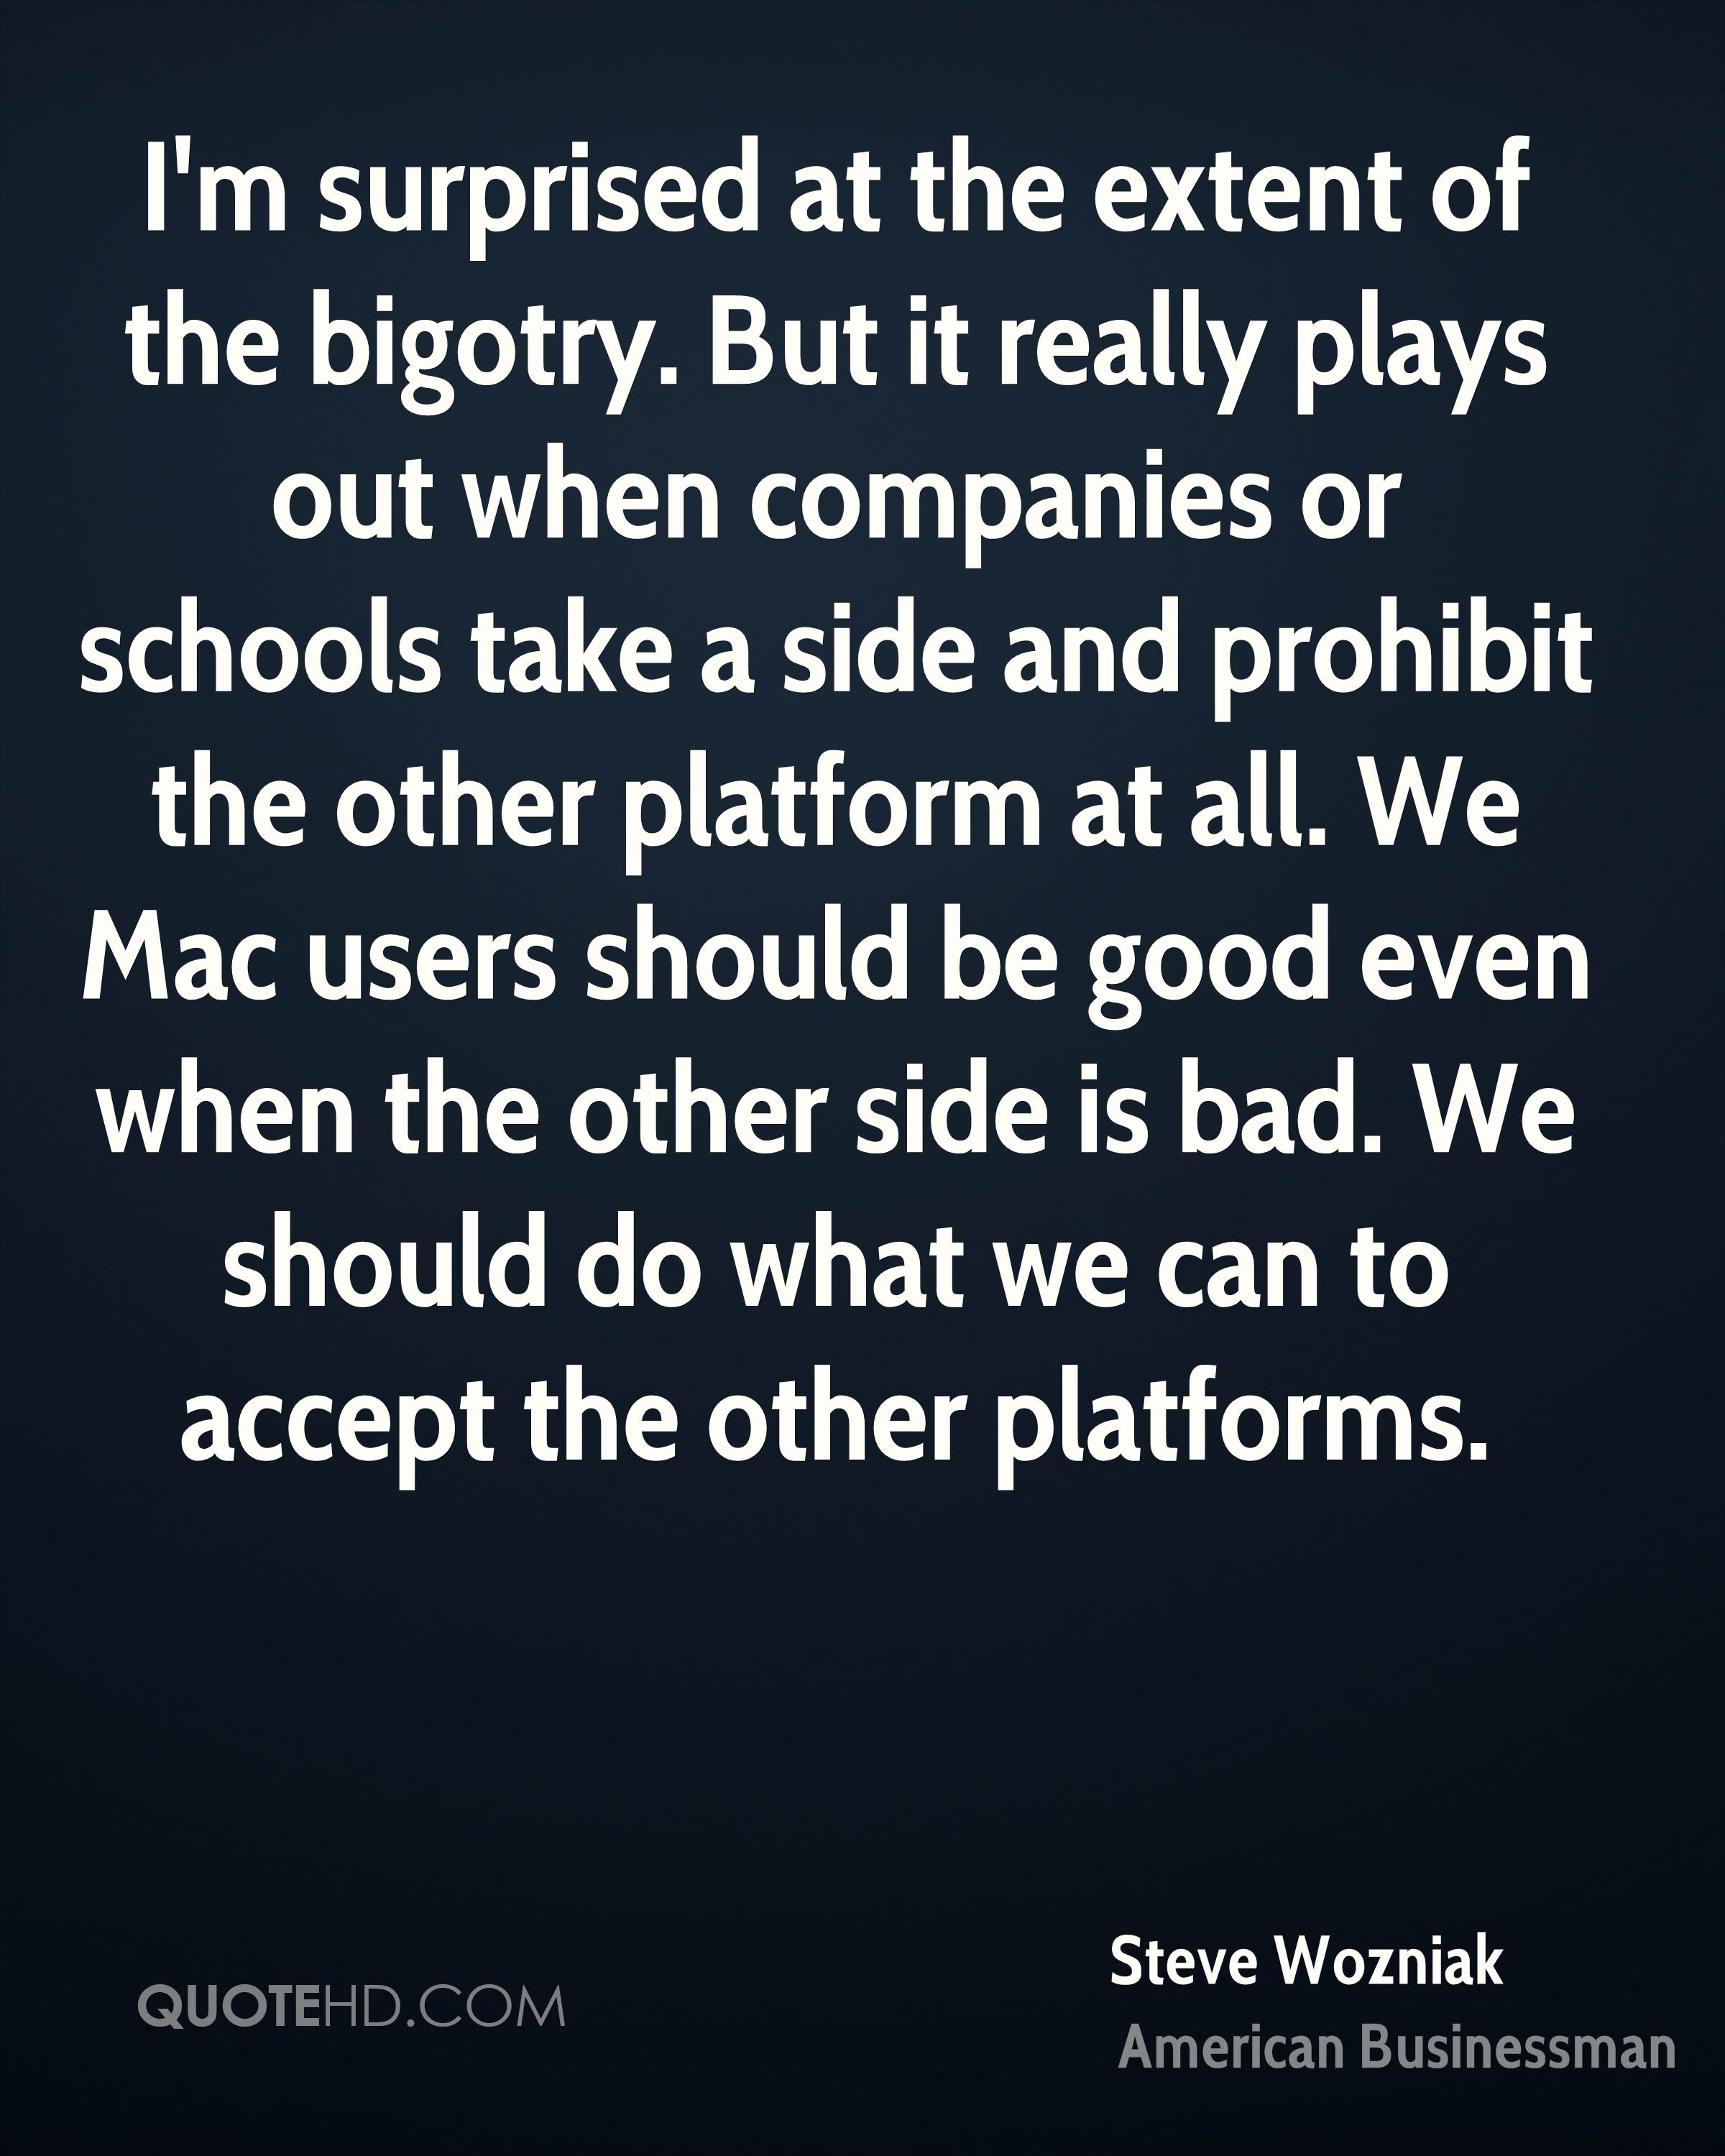 I'm surprised at the extent of the bigotry. But it really plays out when companies or schools take a side and prohibit the other platform at all. We Mac users should be good even when the other side is bad. We should do what we can to accept the other platforms.